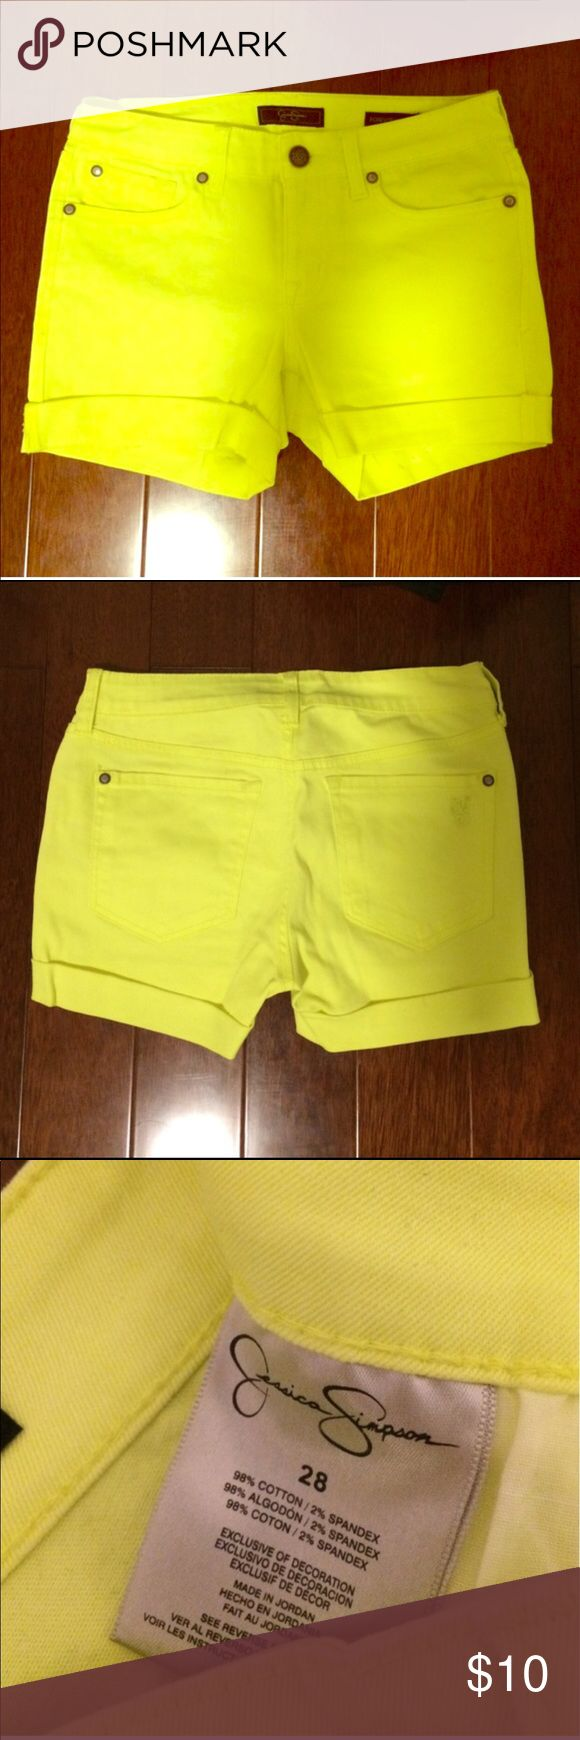 Jessica Simpson Neon Shorts Reposh. Bought for vacation, but ended up not wearing. Original owner only wore once. EUC. Jessica Simpson Shorts